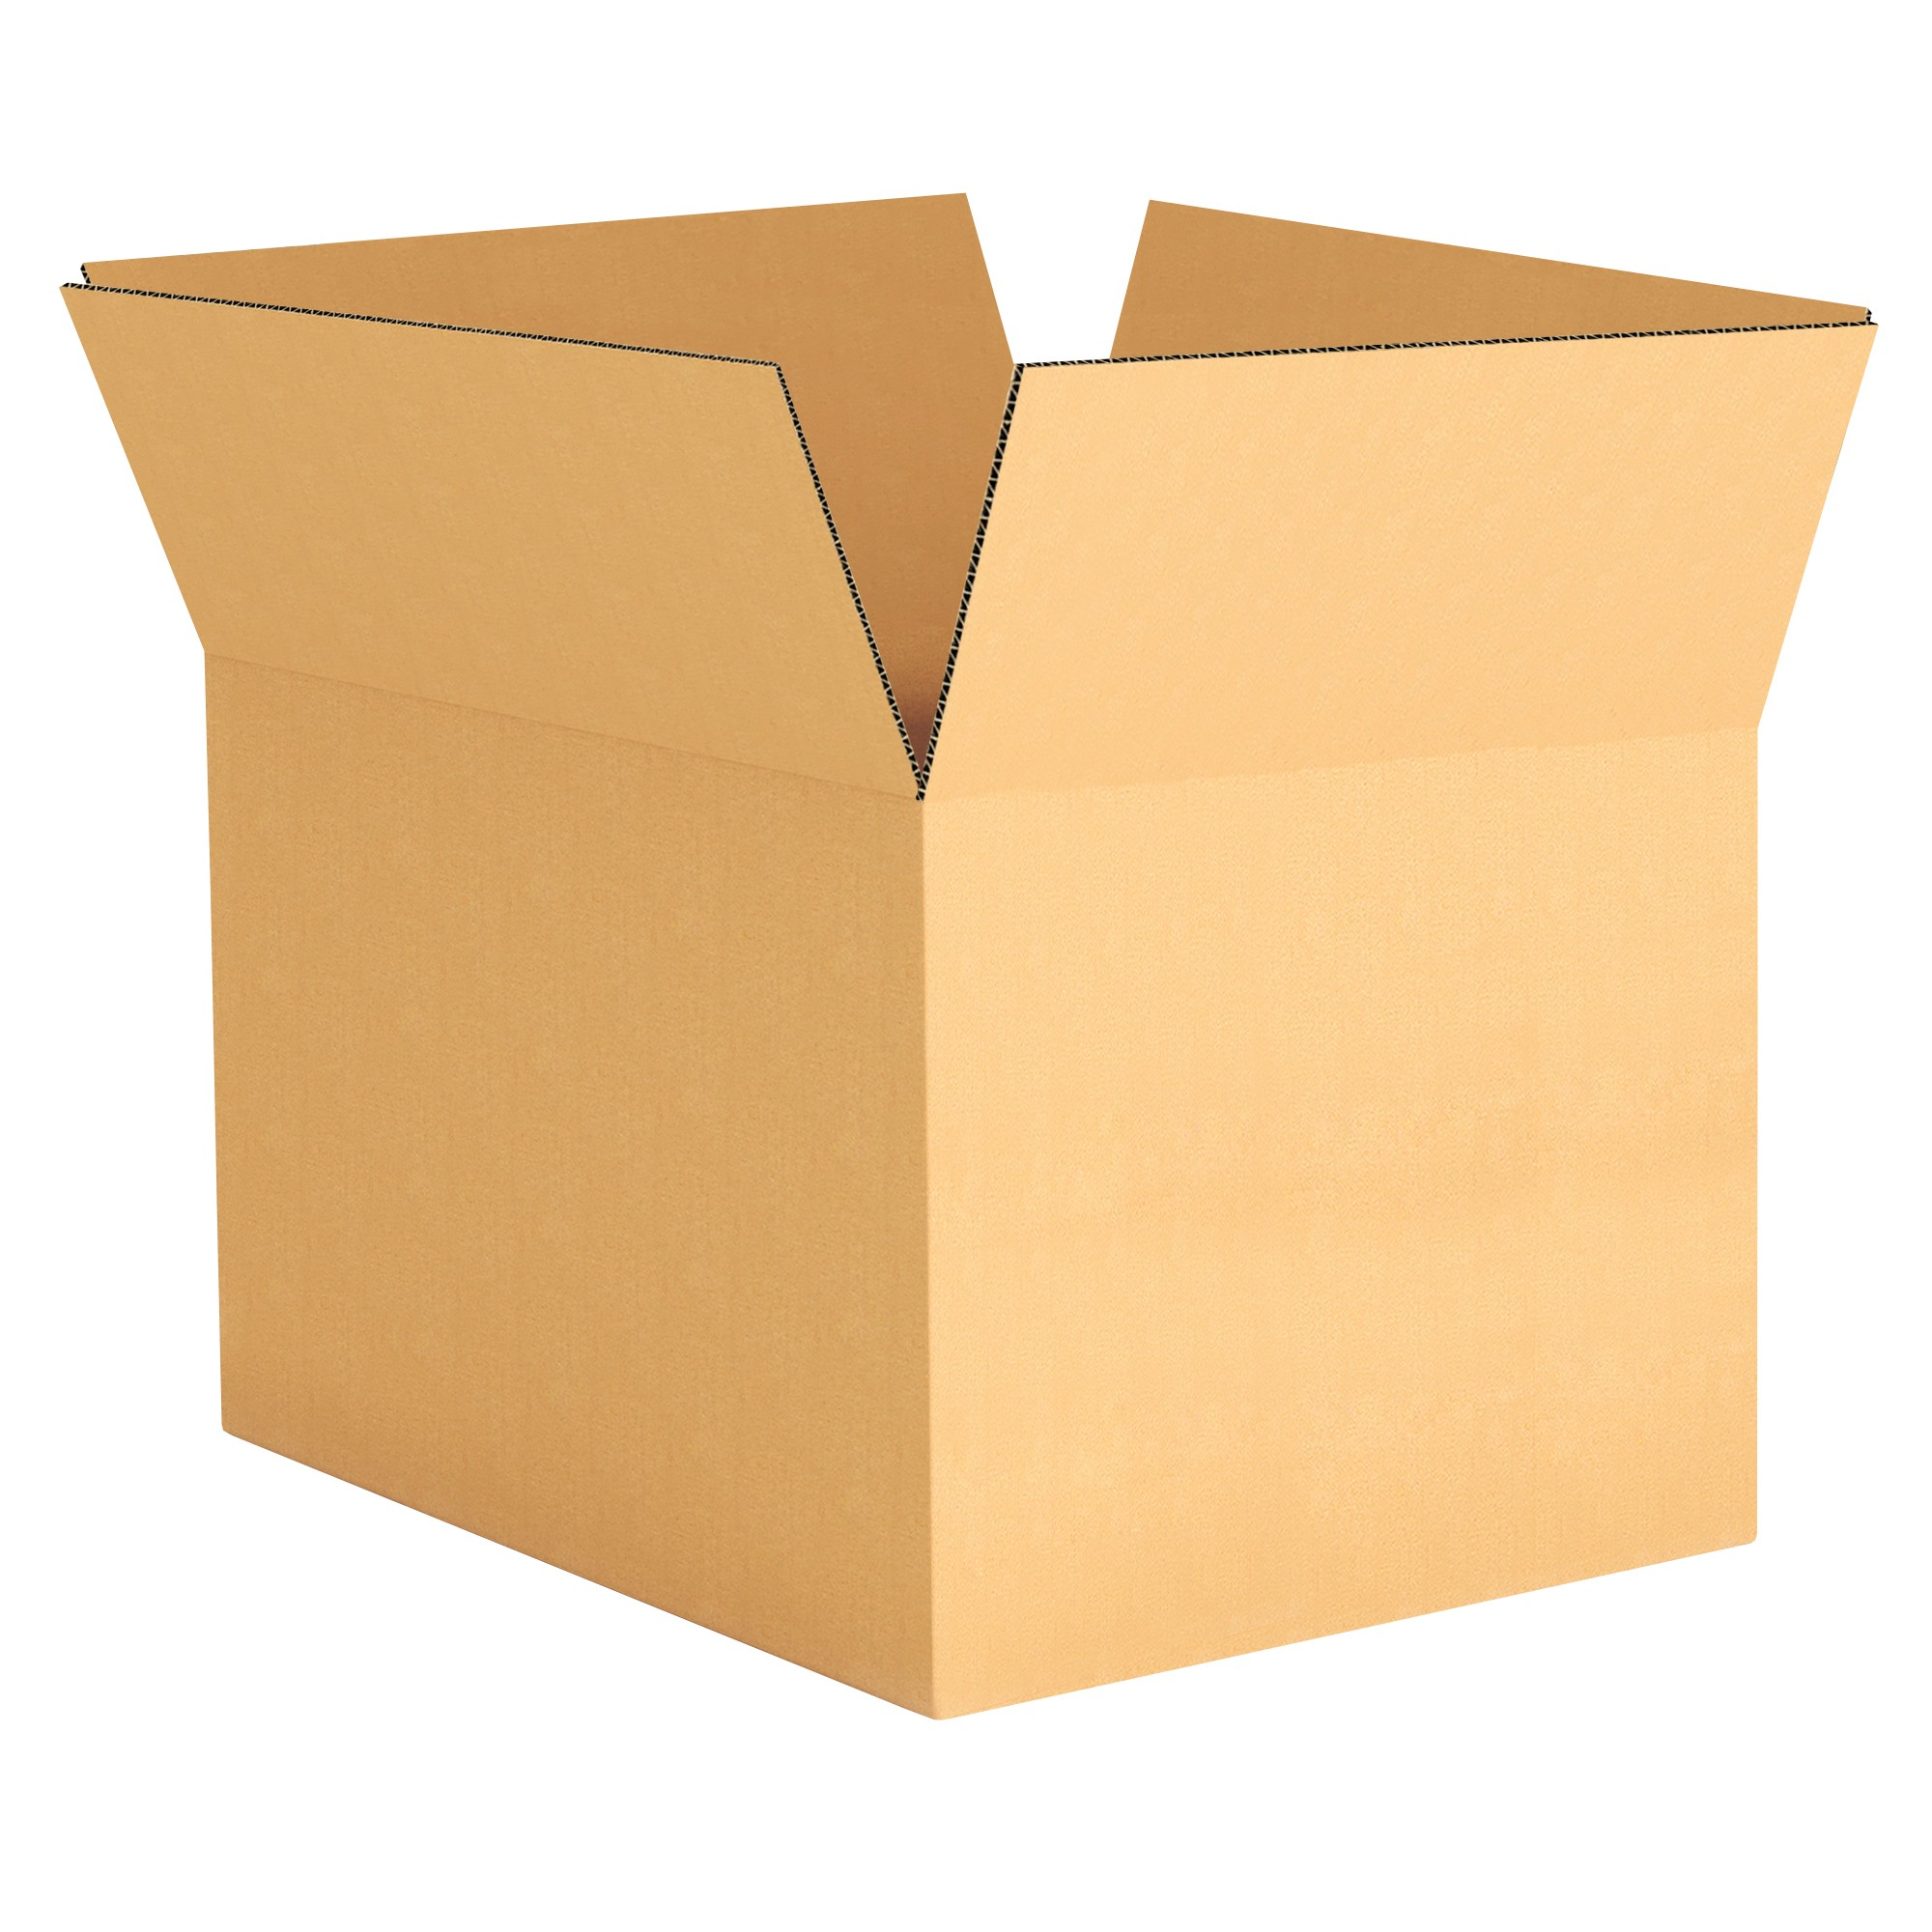 "TOTALPACK® 16 x 12 x 10"" Single Wall Corrugated Boxes 25 Units"